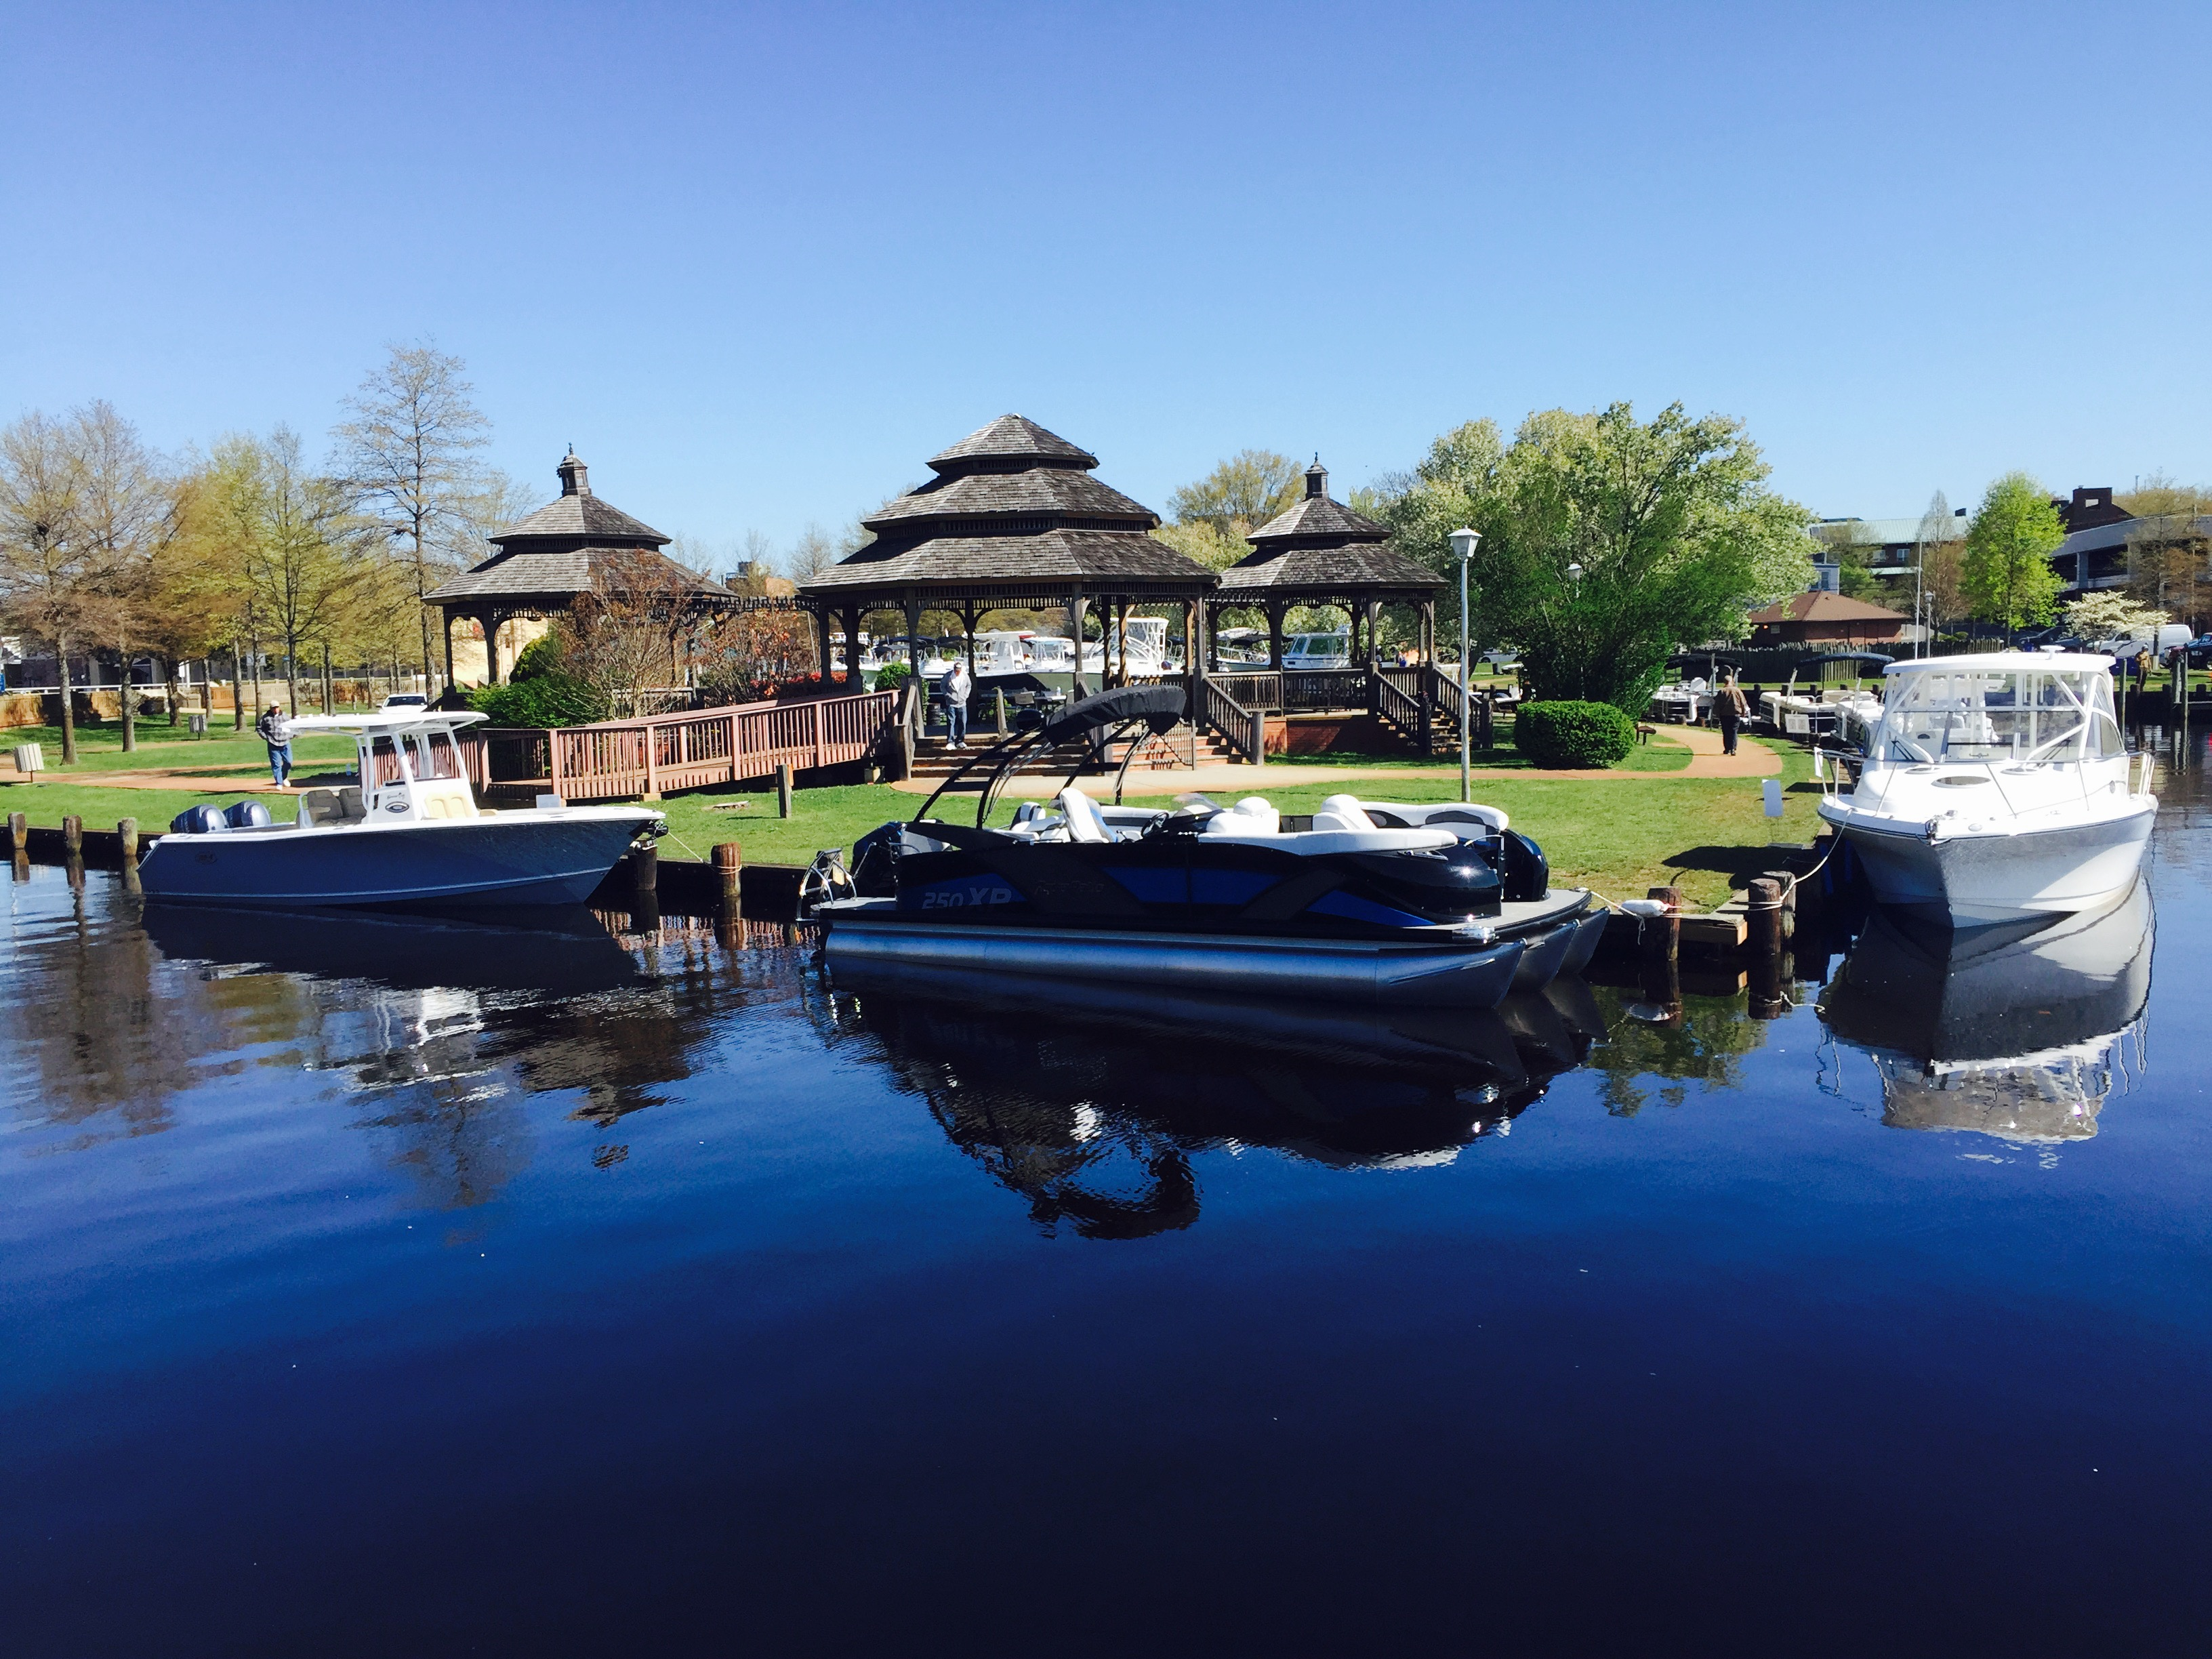 Great picture of the Spring 2015 Huddy Park boat show